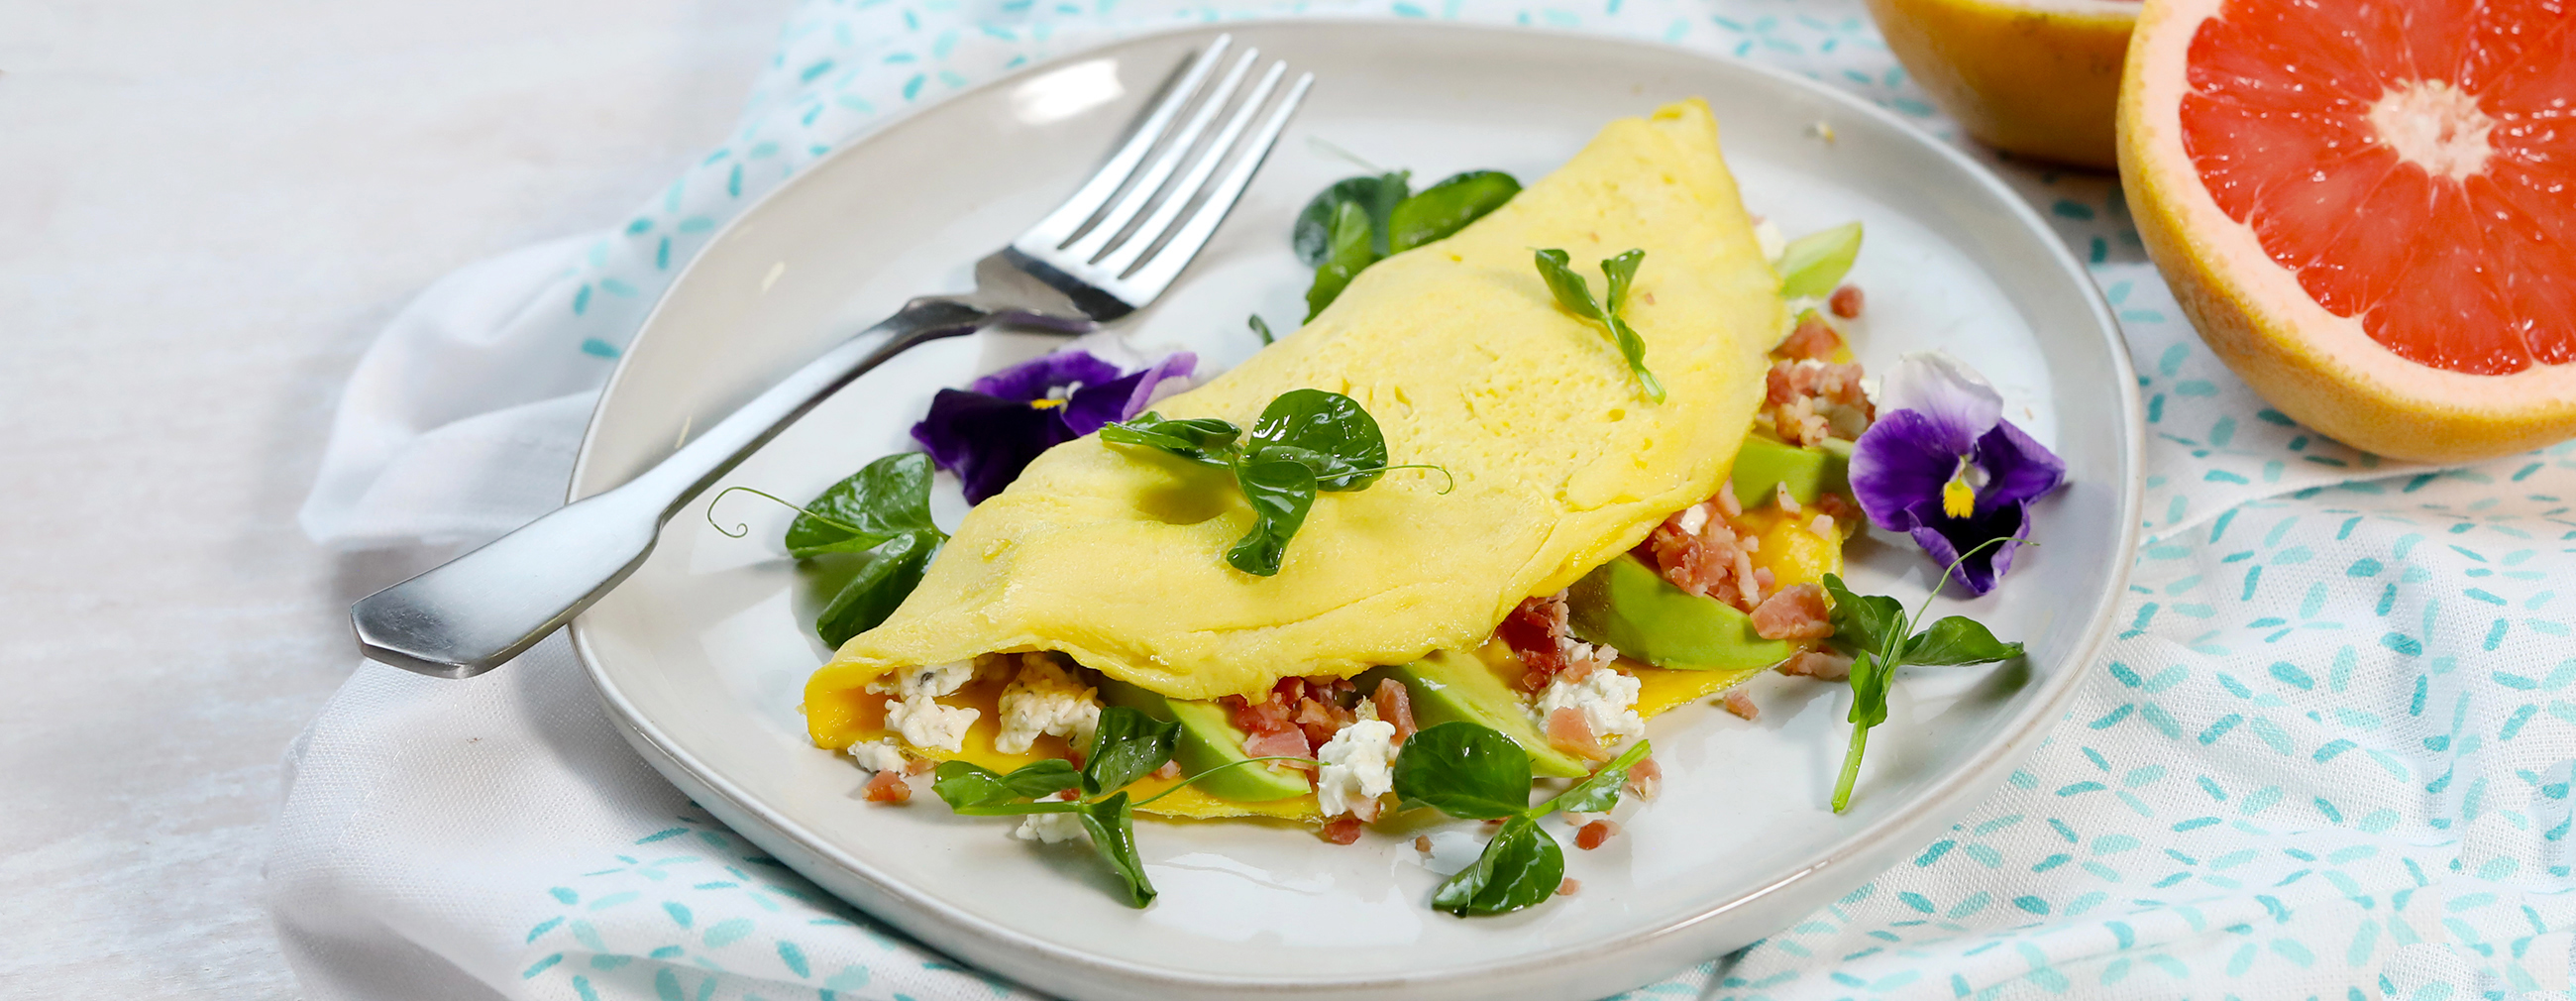 Avocado, Bacon and Goat Cheese Omelets